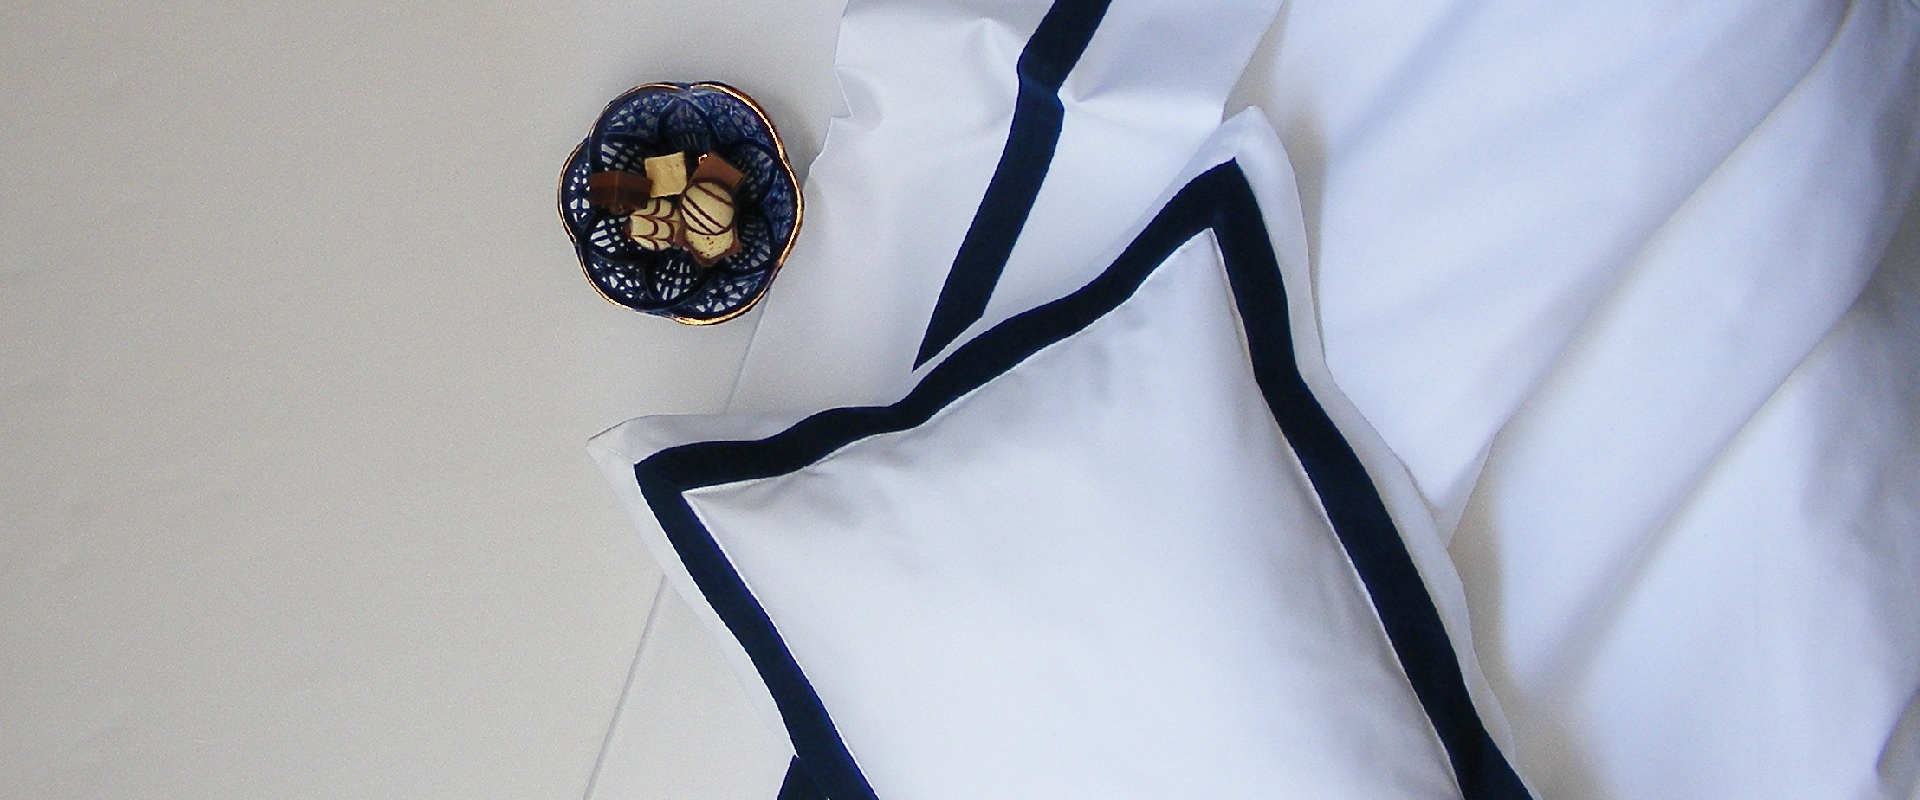 Falucca   signature collection   double oxford midnigt on white   resized slider   online shop   home page